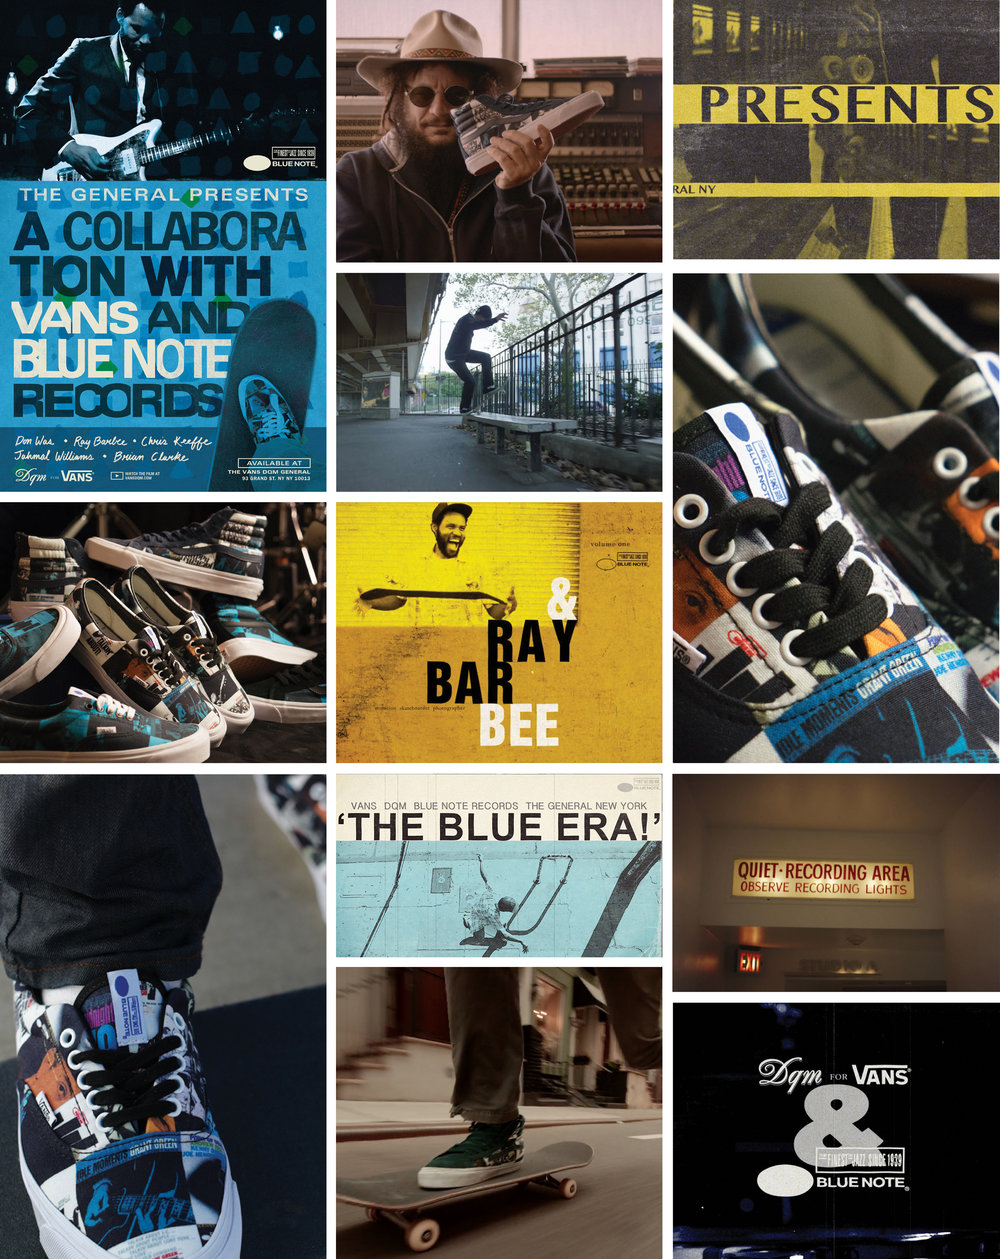 DQM collaborated with Vans to produce a very special project with the iconic Blue Note Records. Releasing in the Spring and Summer of 2015, the project included two separate, consecutive footwear releases accompanied by a film featuring Don Was, the renowned musician/ producer President of Blue Note Records, and the legendary skateboarder and jazz-inspired contemporary musician Ray Barbee. Founded in New York in 1939 by Alfred Lion and Max Margulis, Blue Note Records recently celebrated 75 years recording the world's greatest jazz. Many Blue Note albums, especially from the 1950's and early 1960's, are considered to the be the finest jazz recordings of all time, such that the record label name itself is now synonymous with the seminal American music form. The Blue Note Records project produced by DQM and Vans is inspired by the rhythm and extemporization that exists similarly within music, especially jazz, and skateboarding. Equally characterized by free-form thinking, style and improvisation, the art forms of music and skateboarding share a special connection. Both start with a simple stroke of the guitar, a push on a skateboard, and from there, its flow. The project includes consecutive footwear releases produced exclusively for DQM; an OG Era LX and an OG Sk8-Hi LX style in two colorways, 'The Colors', and 'The Blues'. The shoes are constructed in 6oz canvas yardage printed with a collage featuring cover art from Blue Note's epic catalog; each pair is unique.